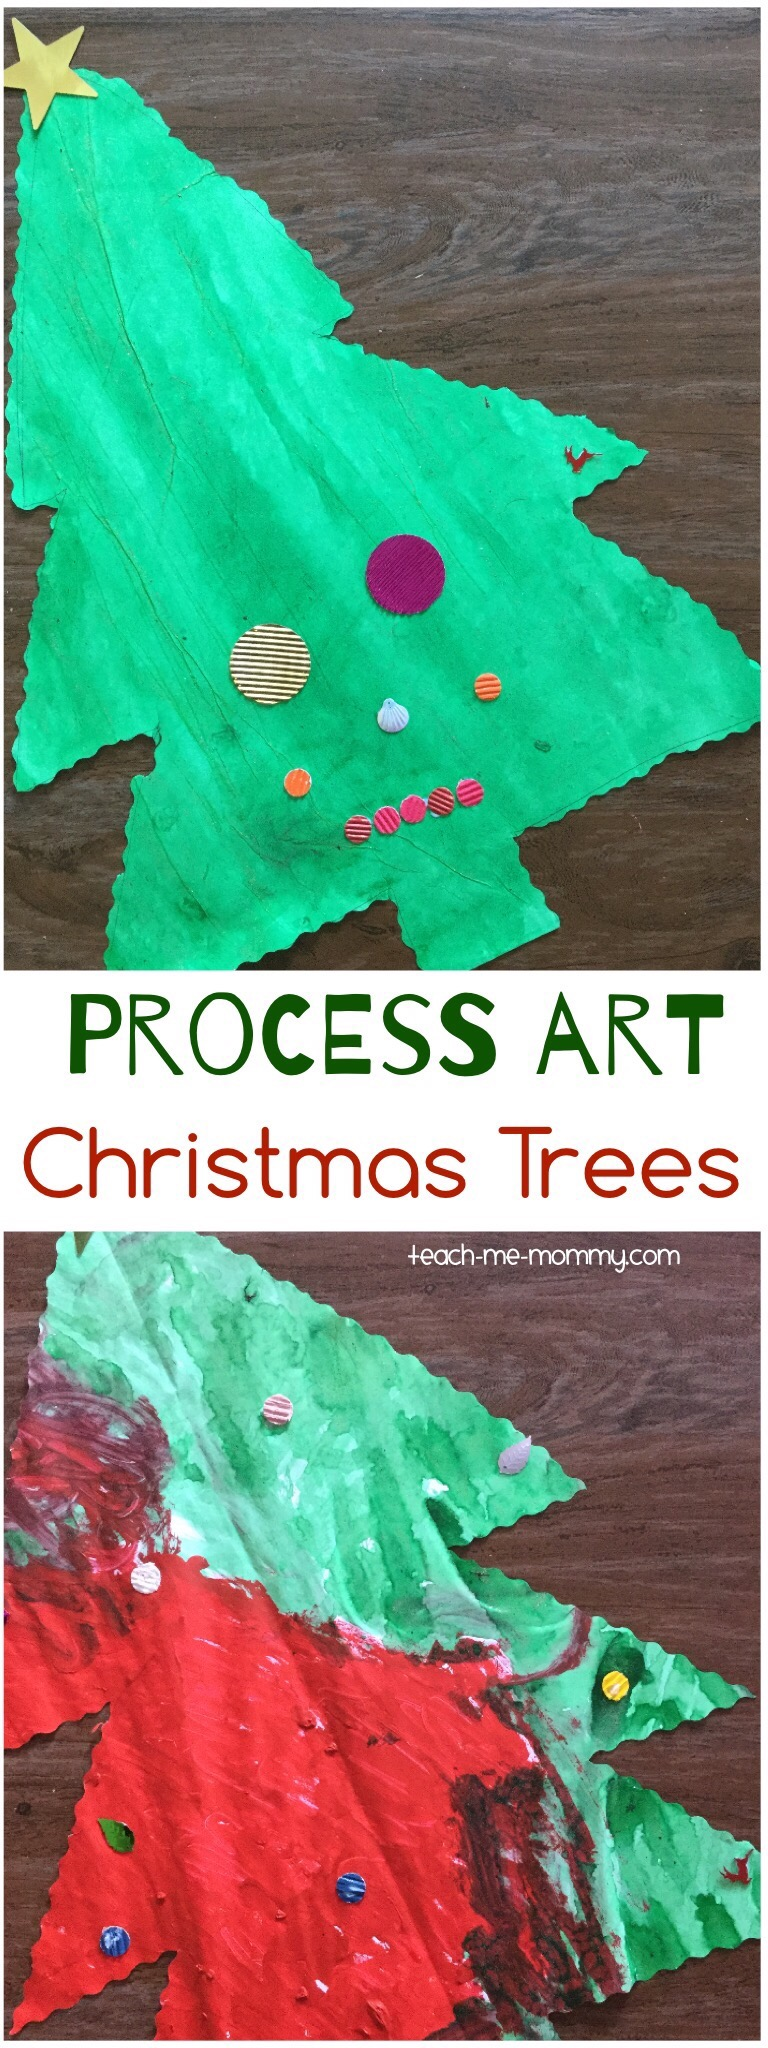 process art trees